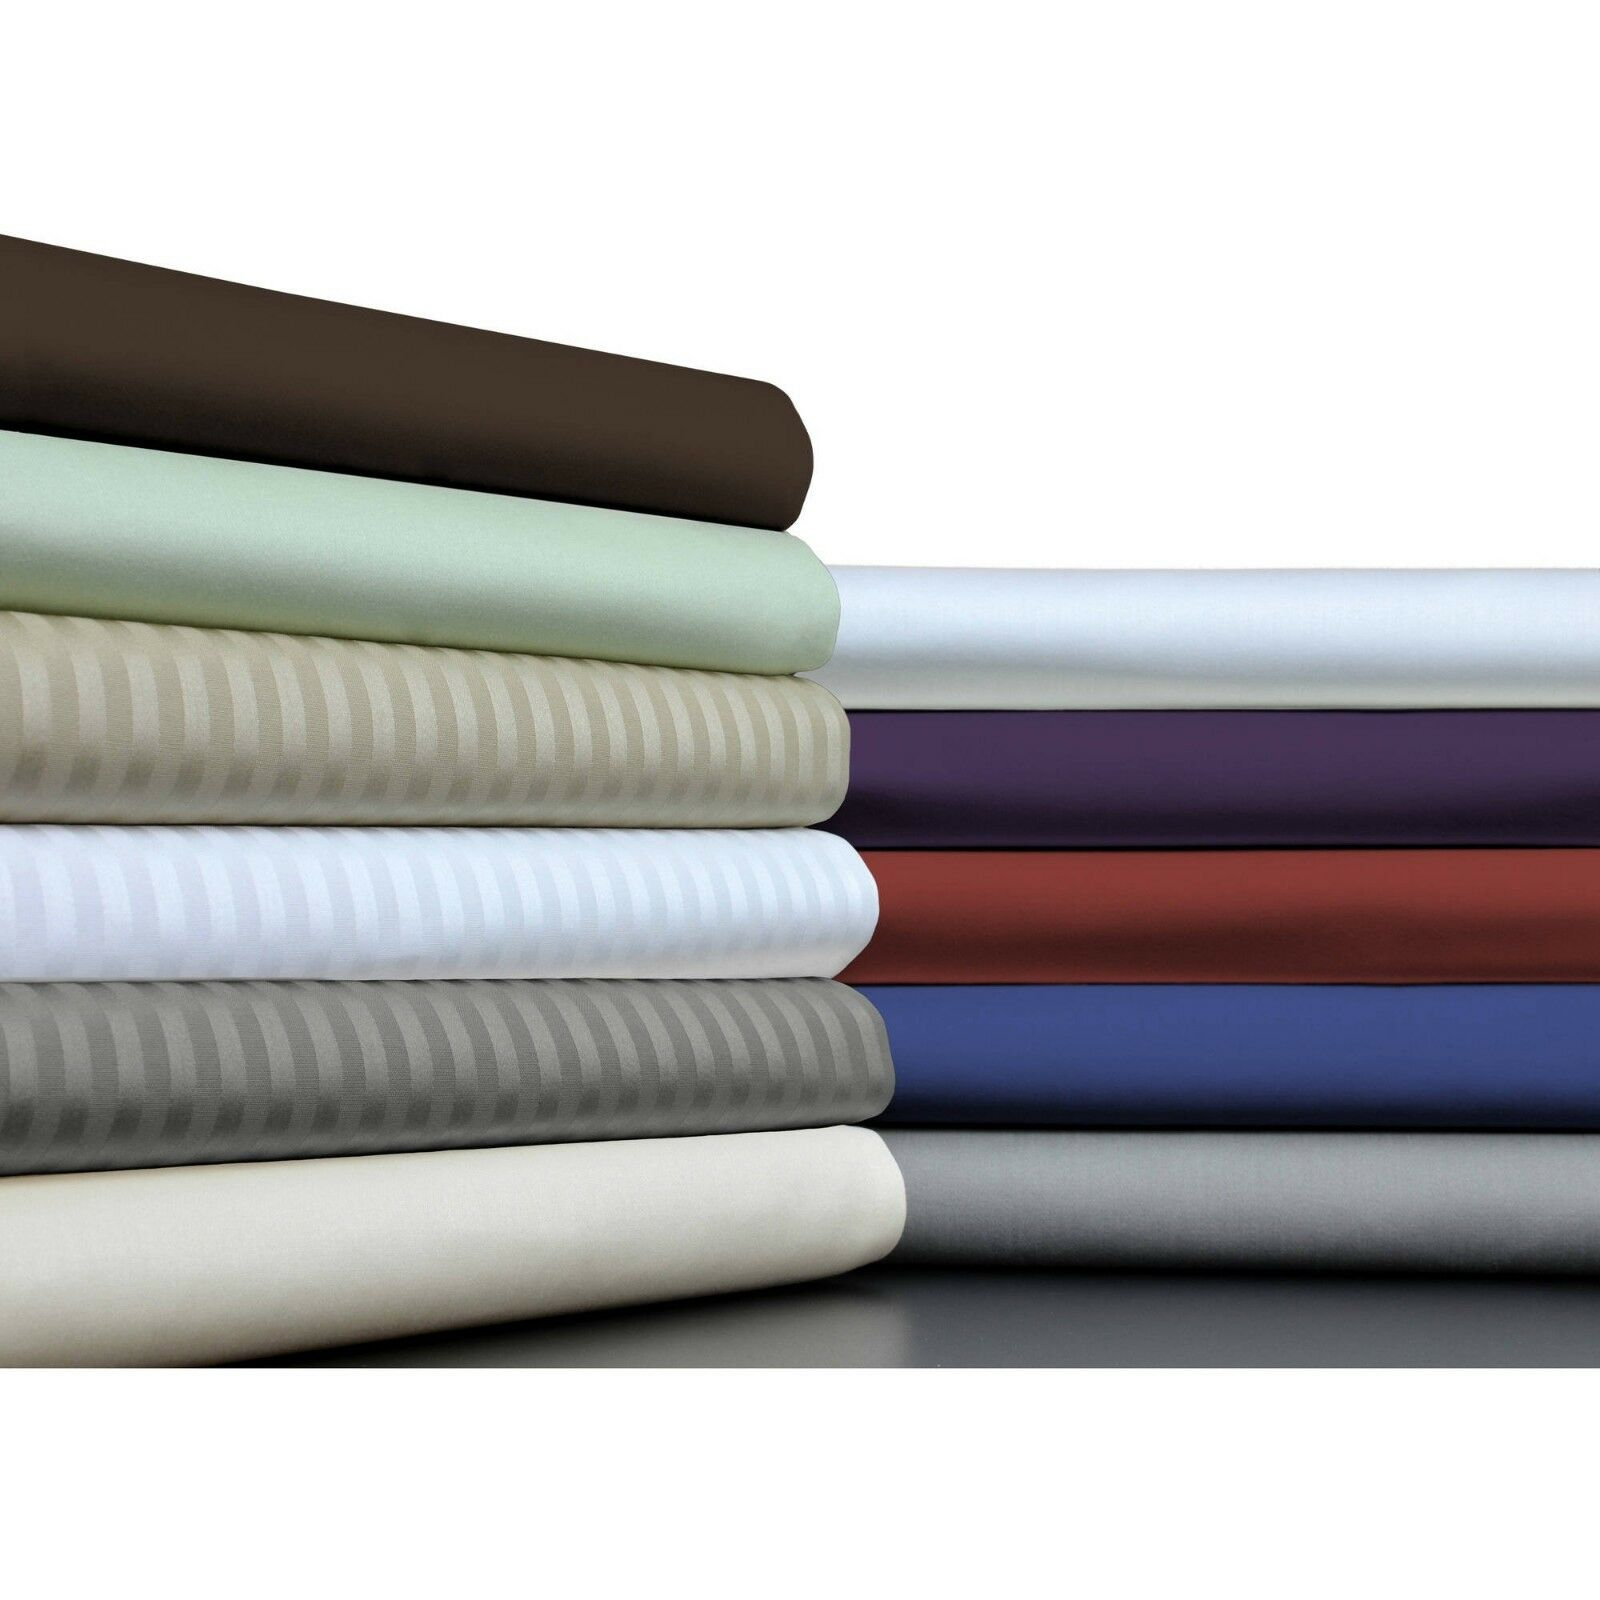 Branded Bedding Collection 1000 TC Egyptian Cotton All colors US Full XL Size